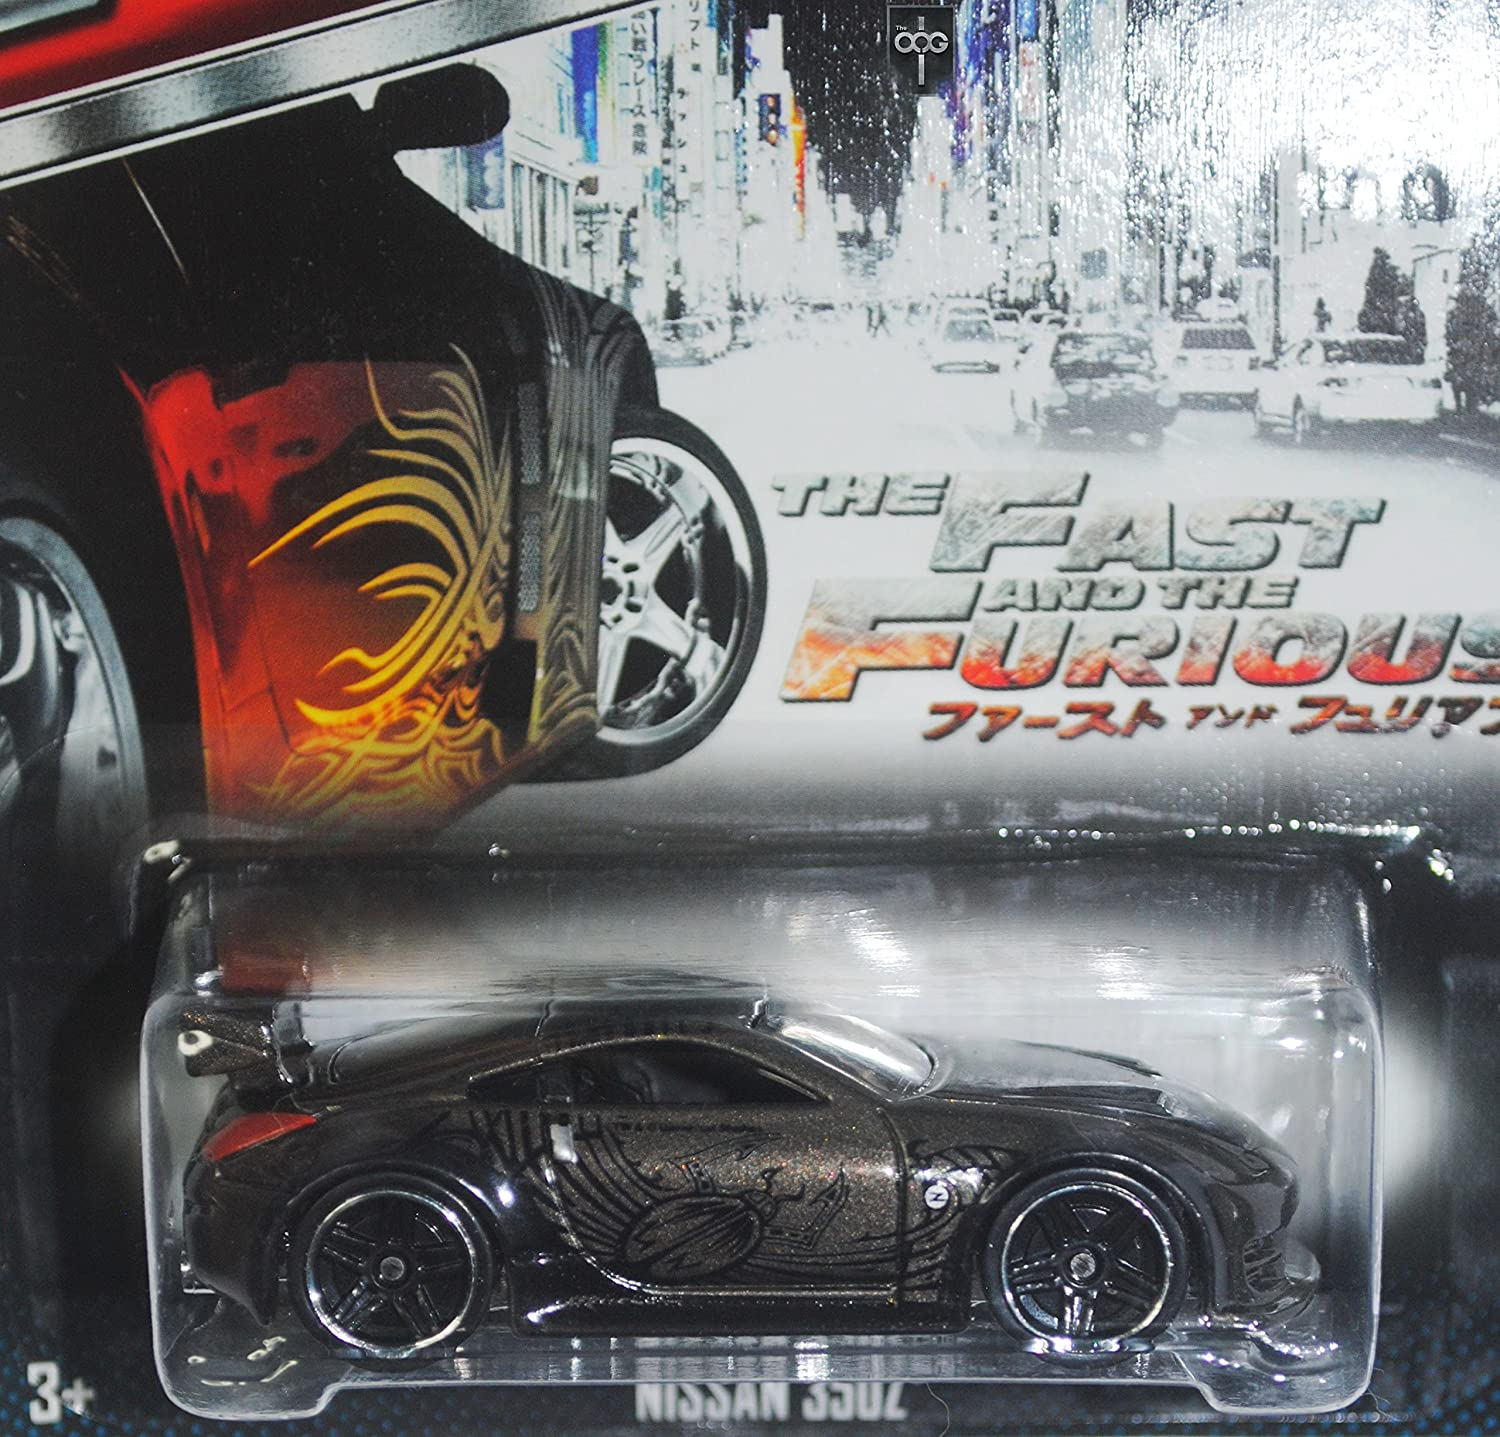 Nissan 350z 2015 >> Mattel Hot Wheels 2015 Fast And Furious Release Exclusive Dark Gray Nissan 350z 5 8 Die Cast